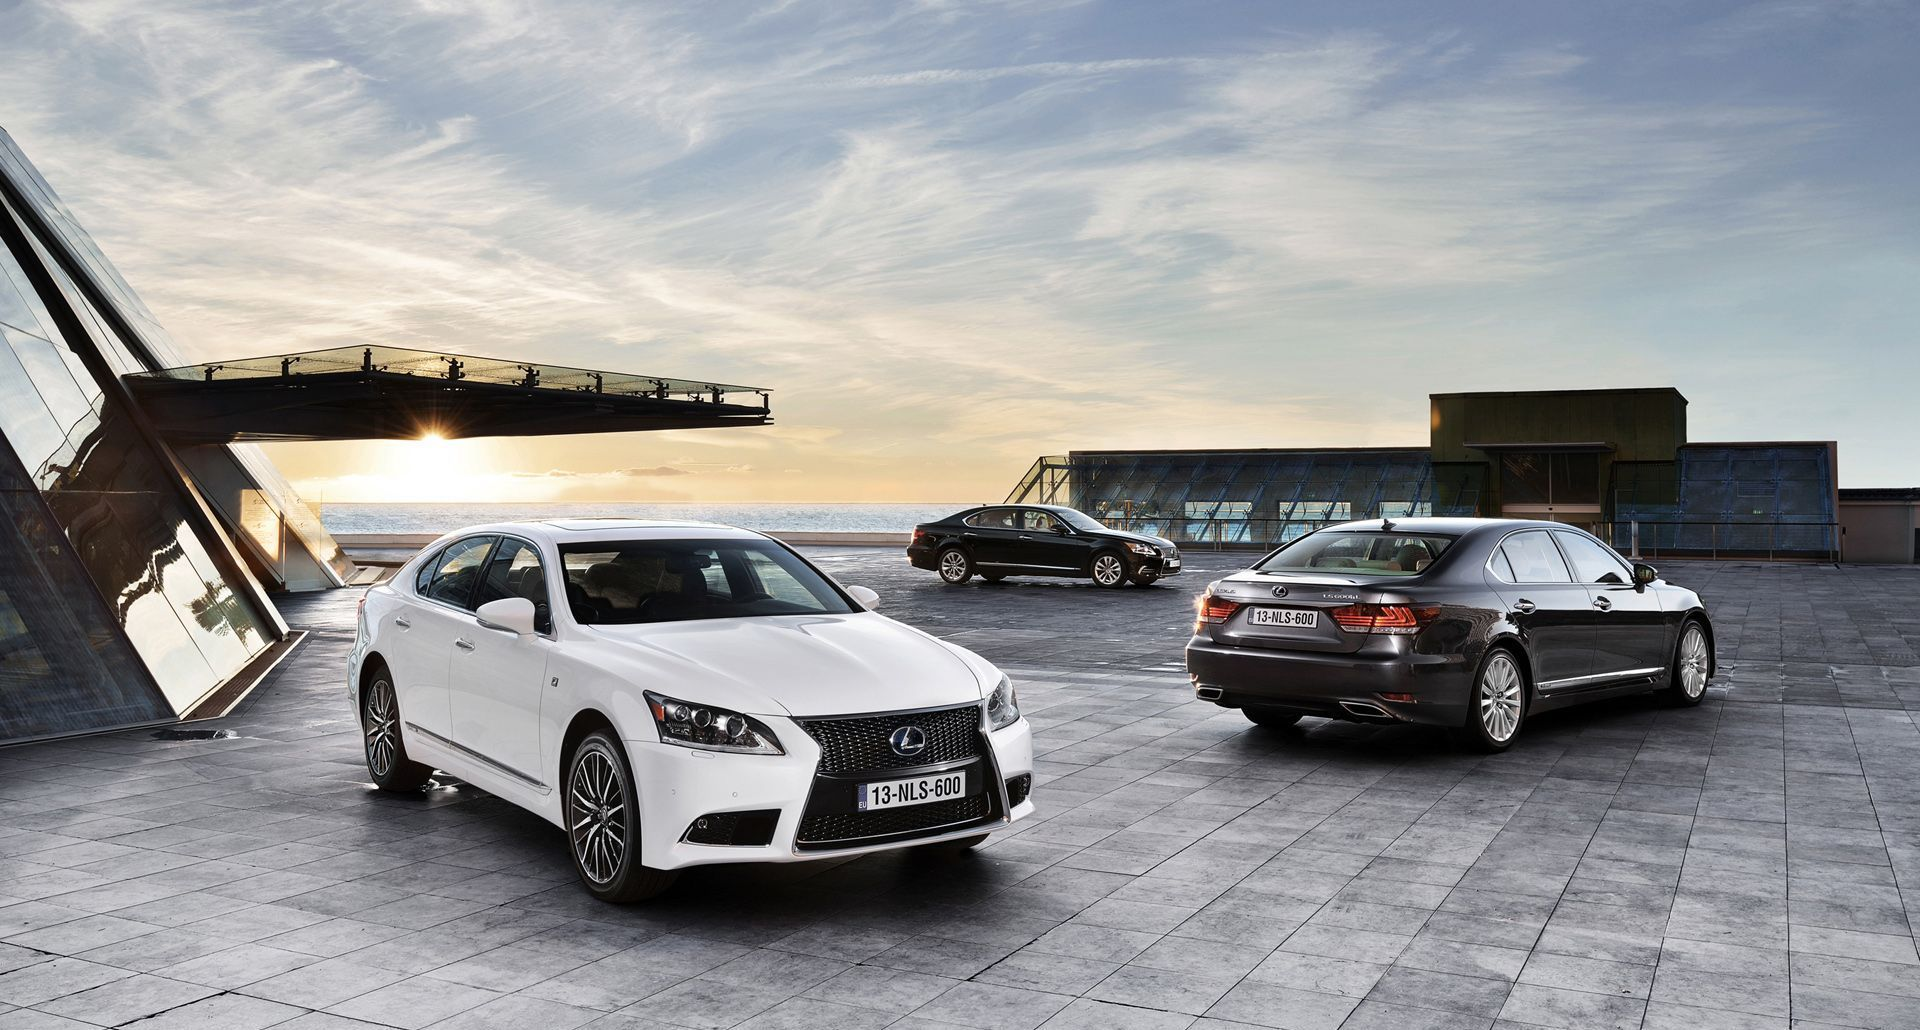 New details on the 2017 Lexus LS emerge